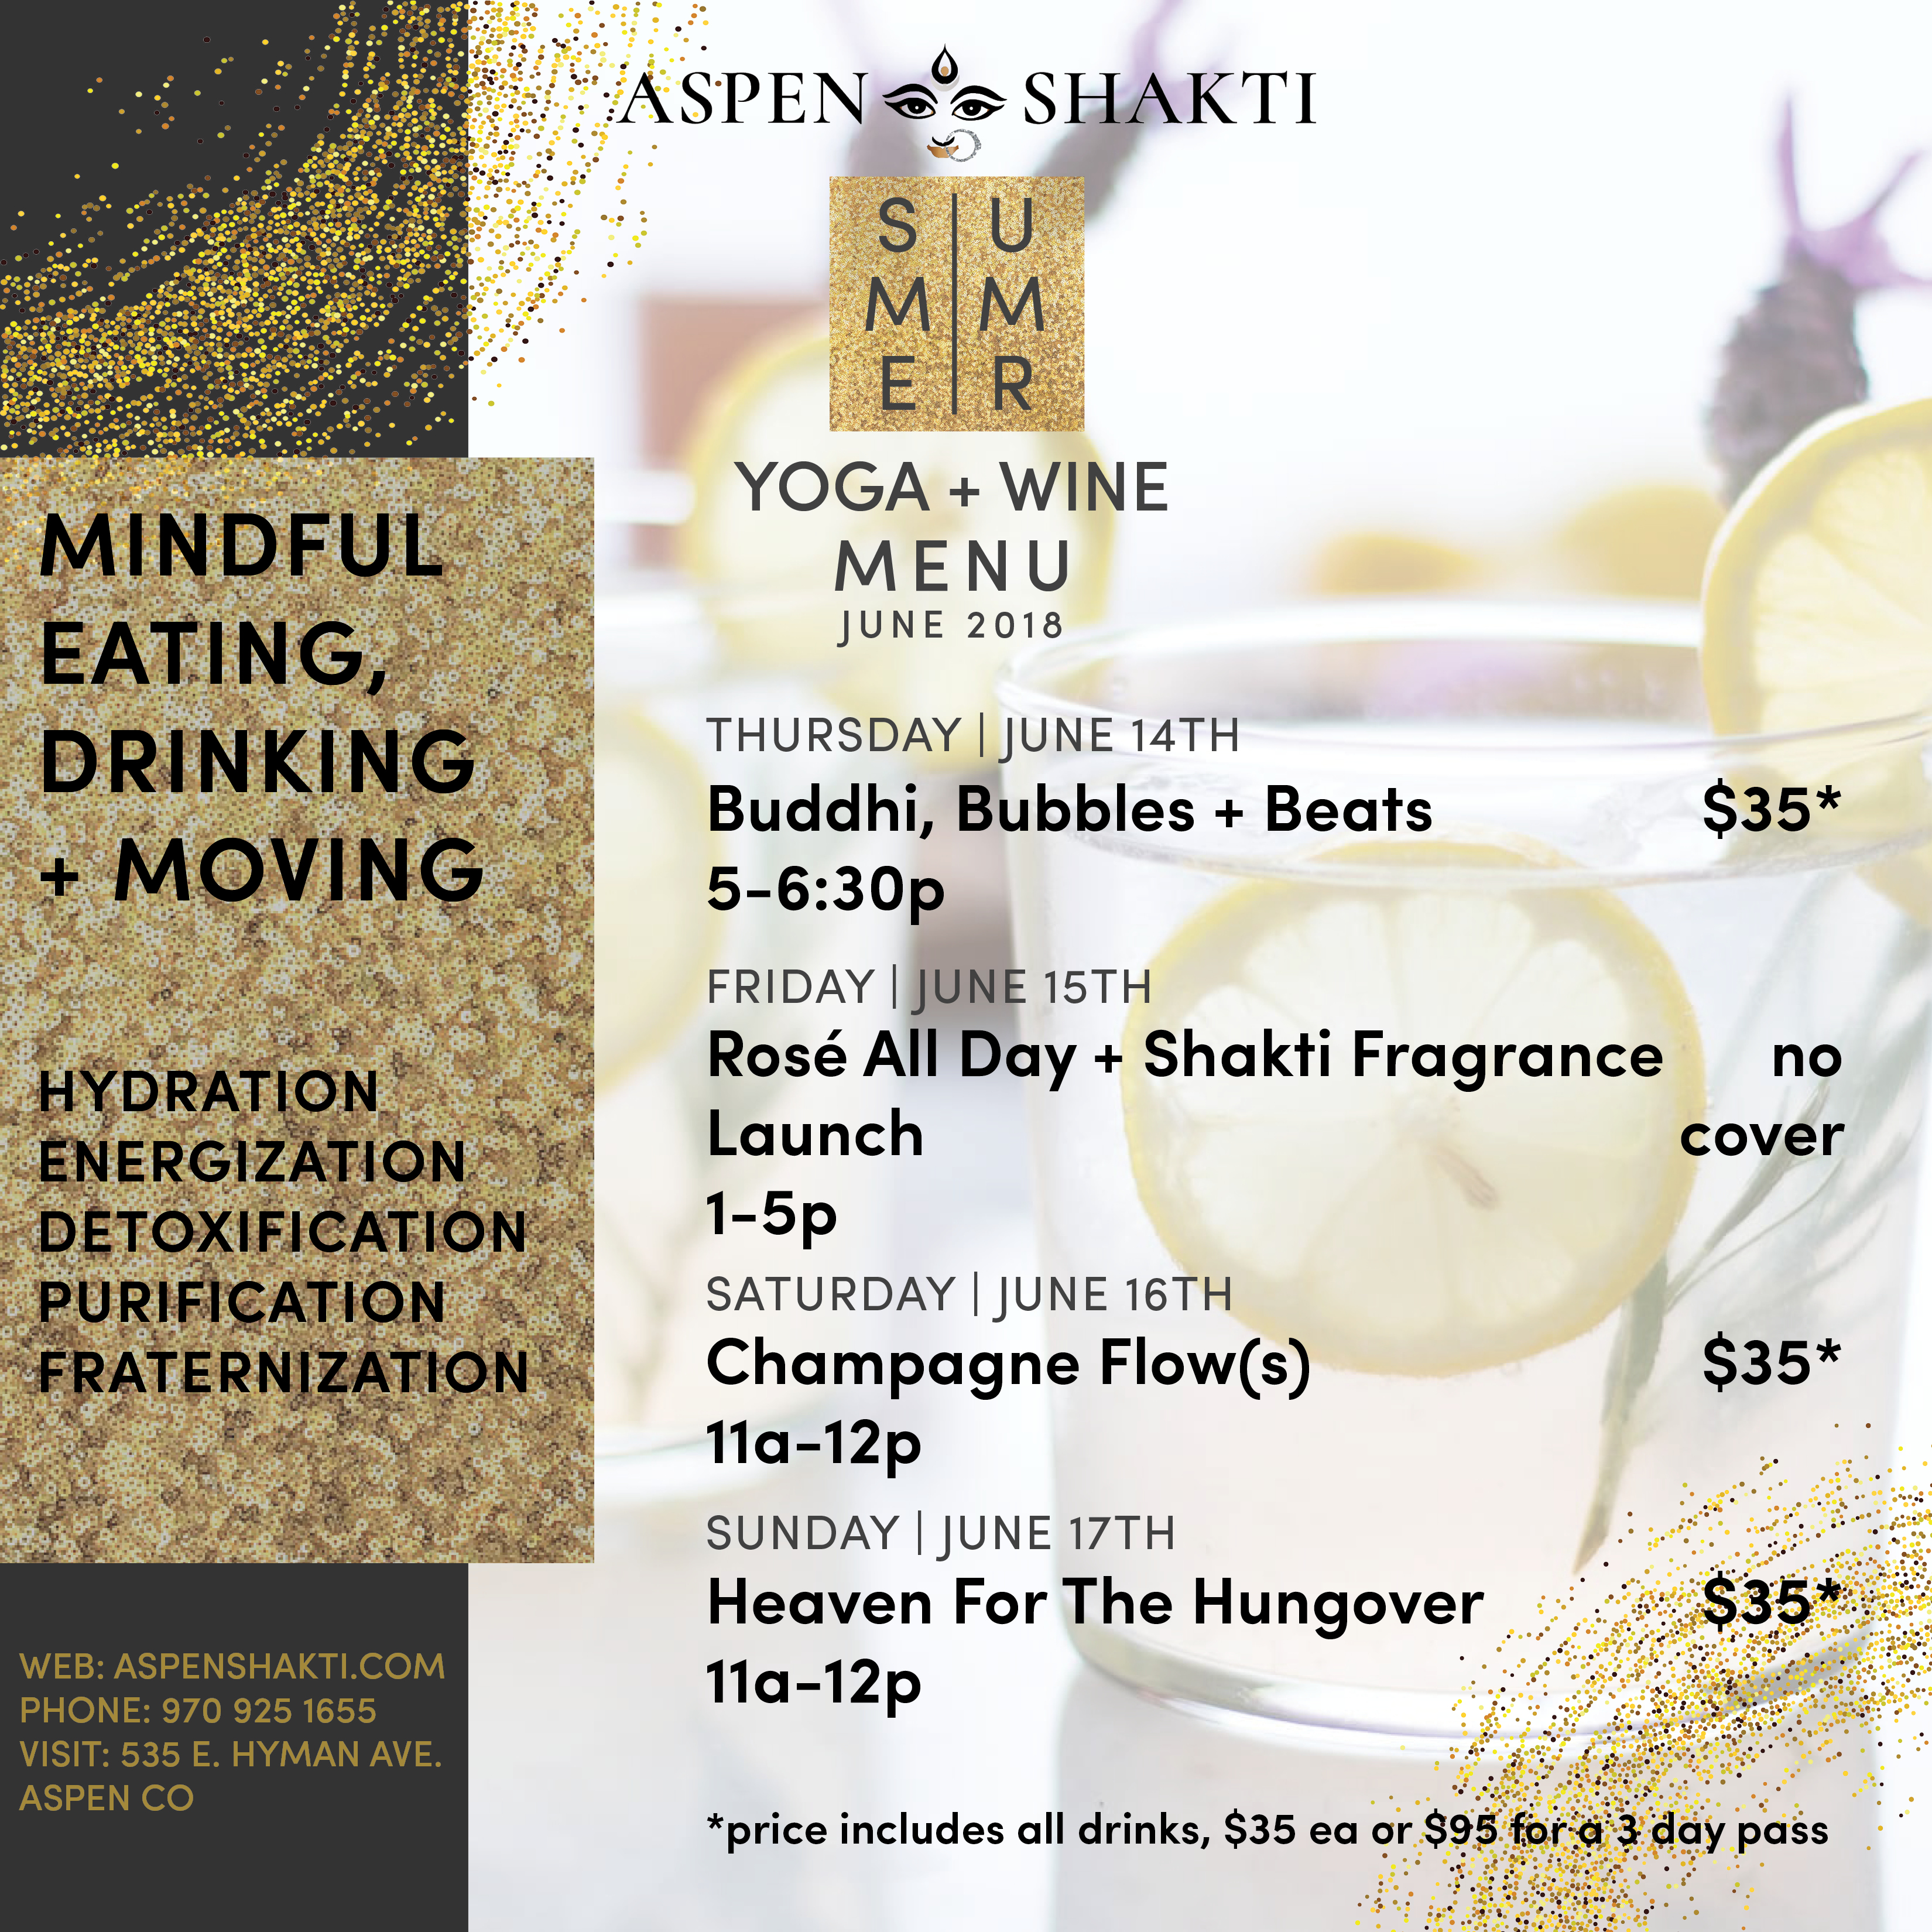 Aspen Shakti's Special Food + Wine Schedule June 14- June 17, 2018: